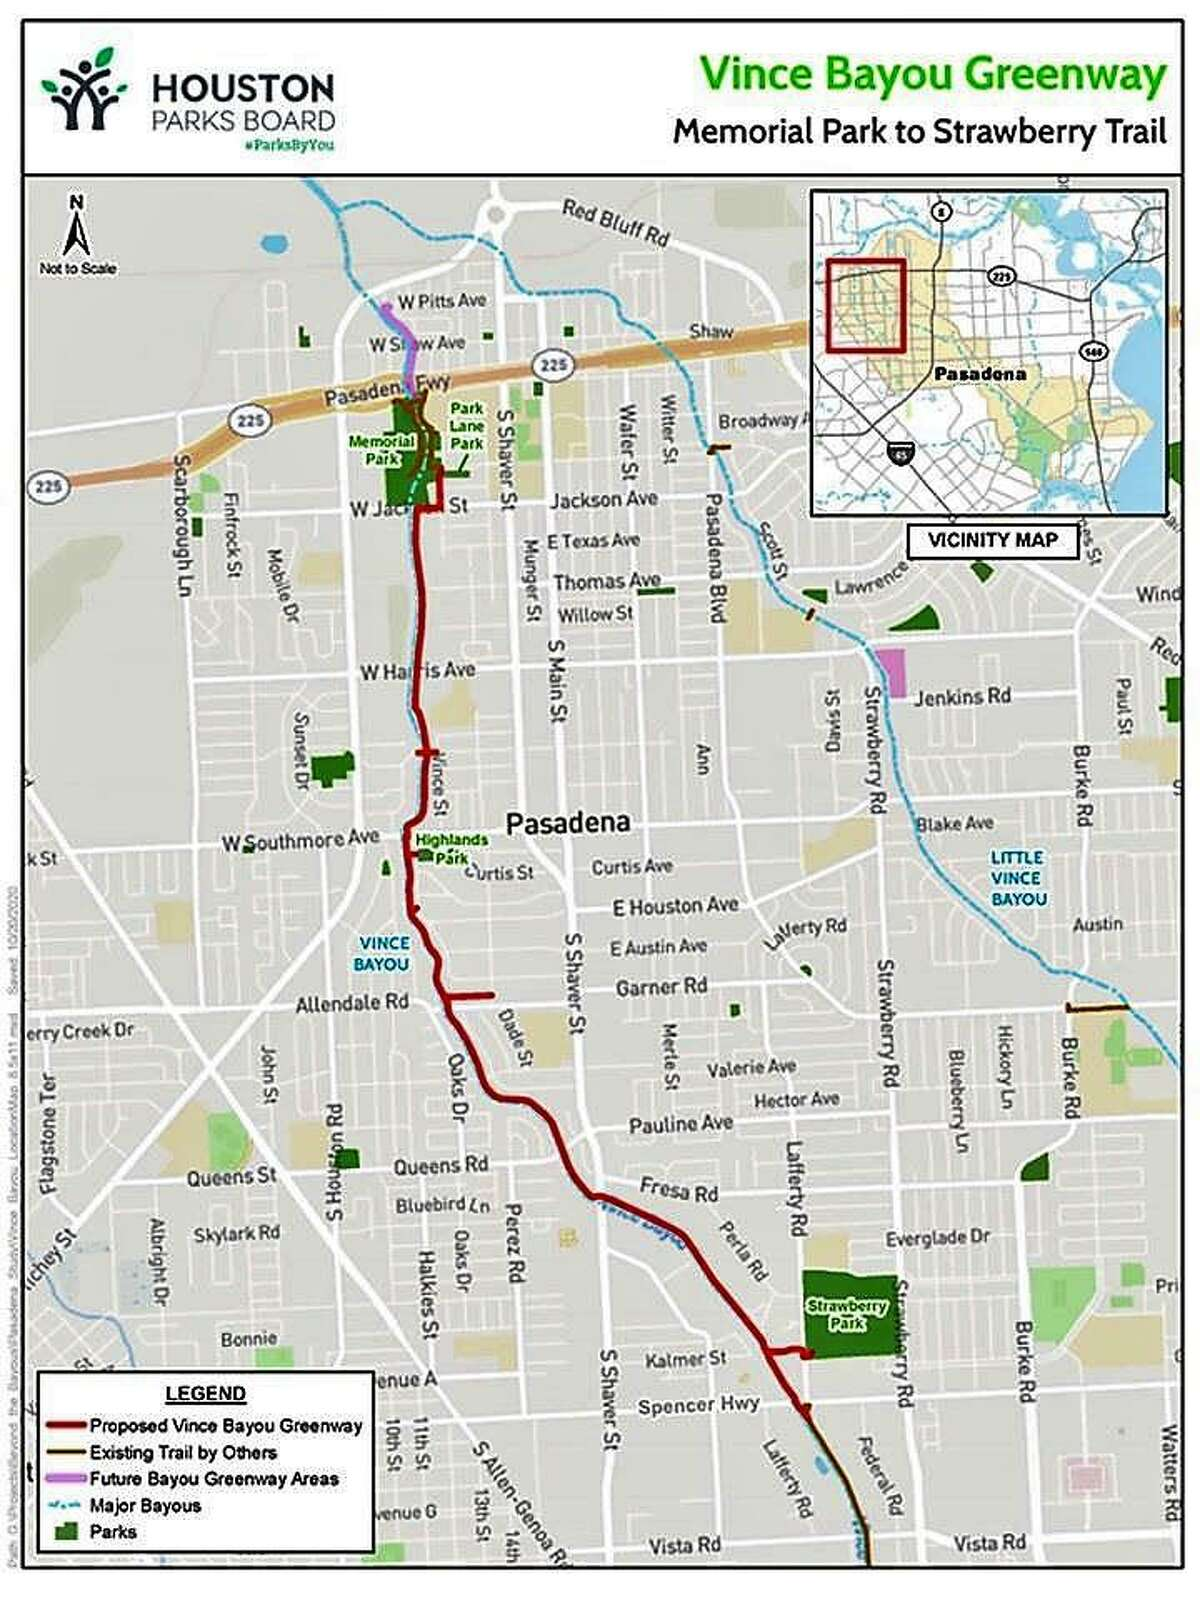 The Vince Bayou Trail Project would connect two of the city of Pasadena's largest parks.